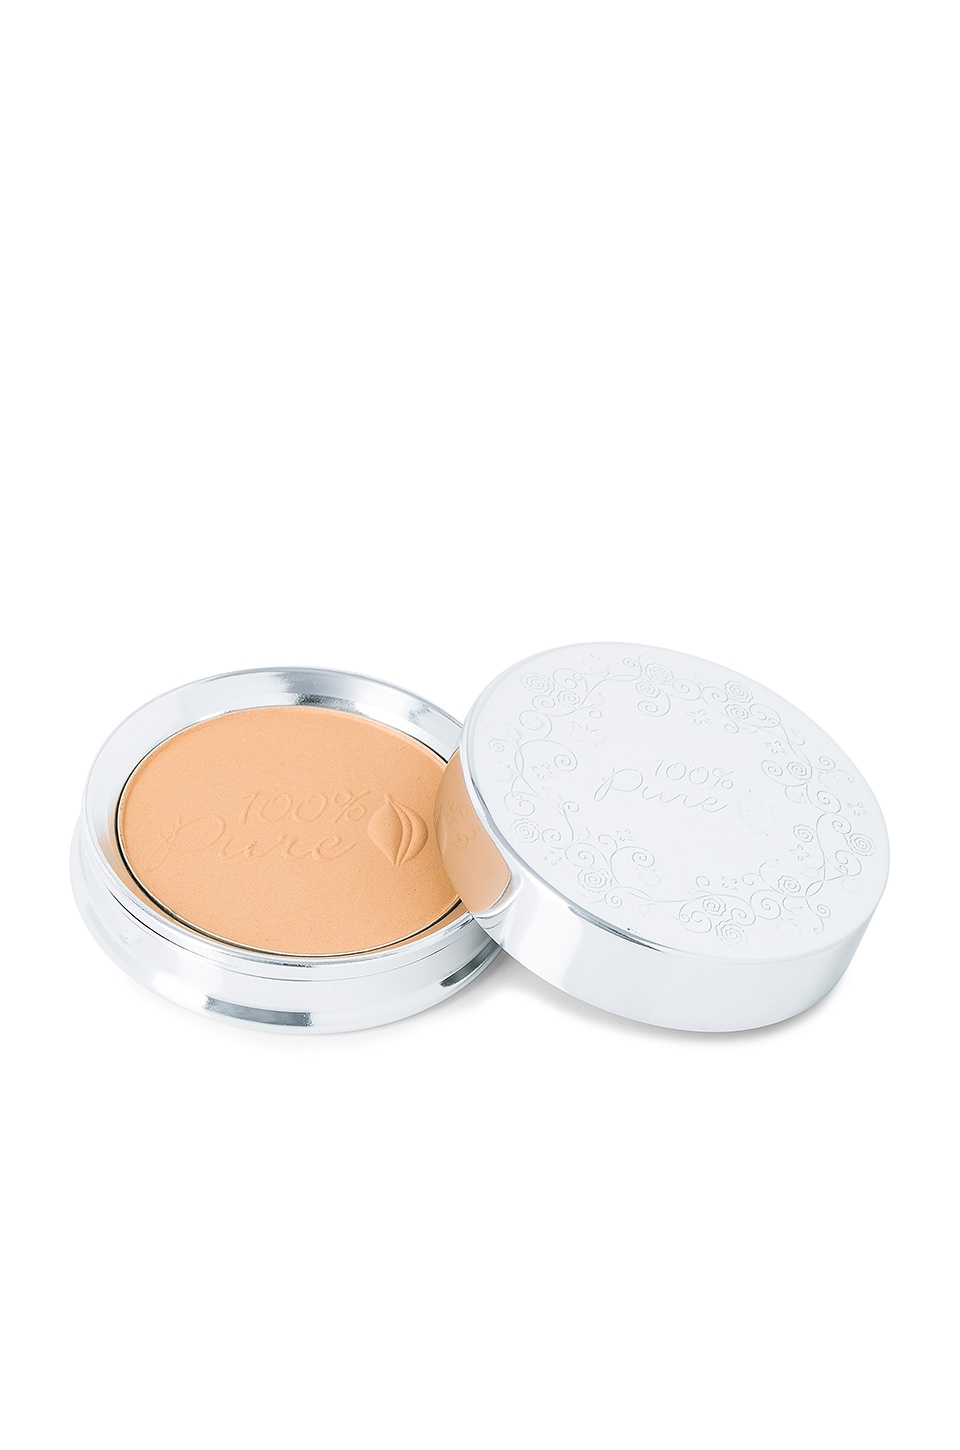 100% Pure Healthy Face Powder Foundation w/ Sun Protection in Sand